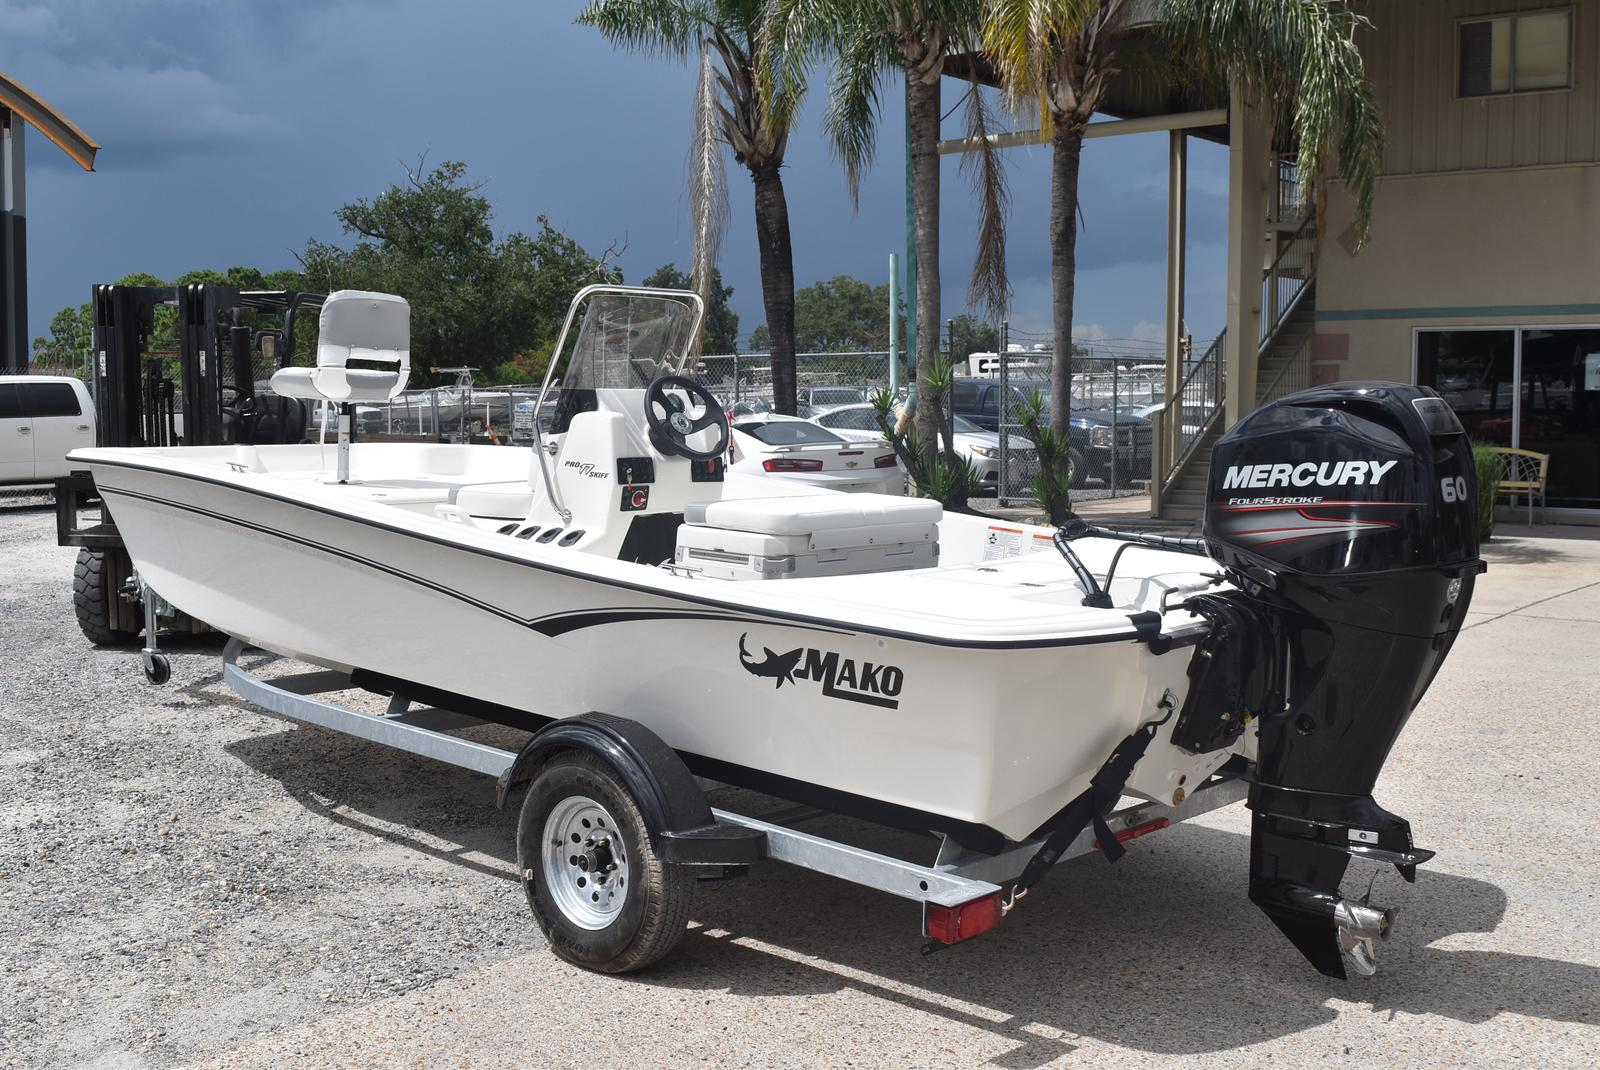 2020 Mako boat for sale, model of the boat is Pro Skiff 17, 75 ELPT & Image # 171 of 702